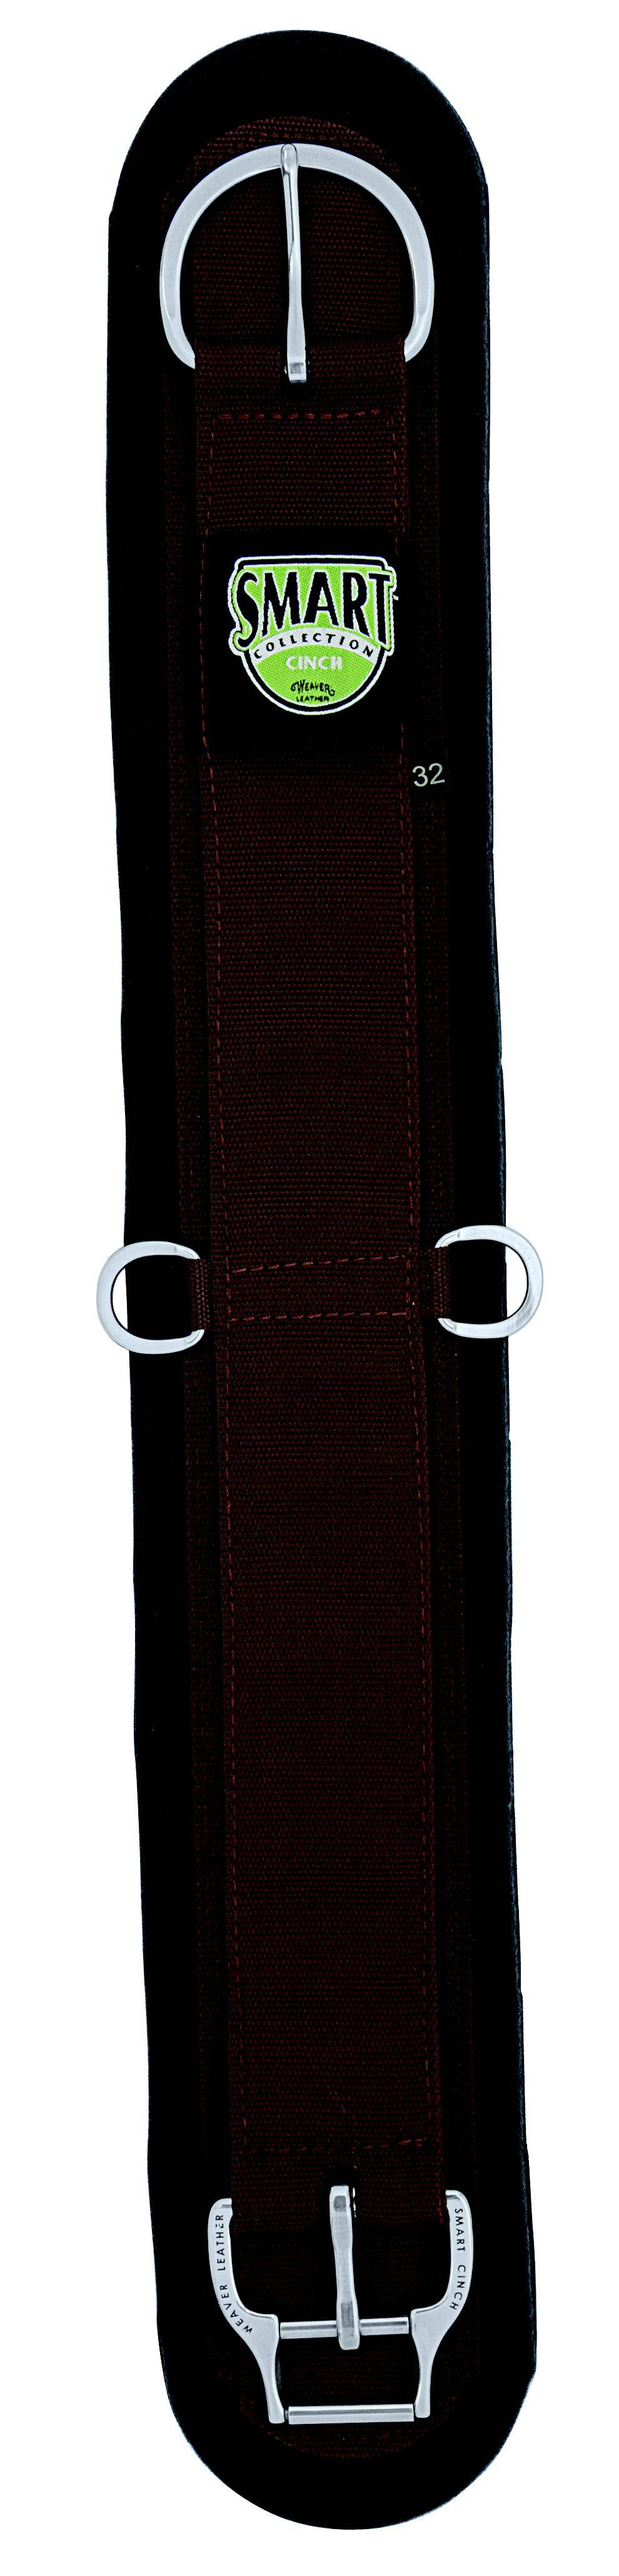 Weaver Leather Neoprene Straight Smart Cinch